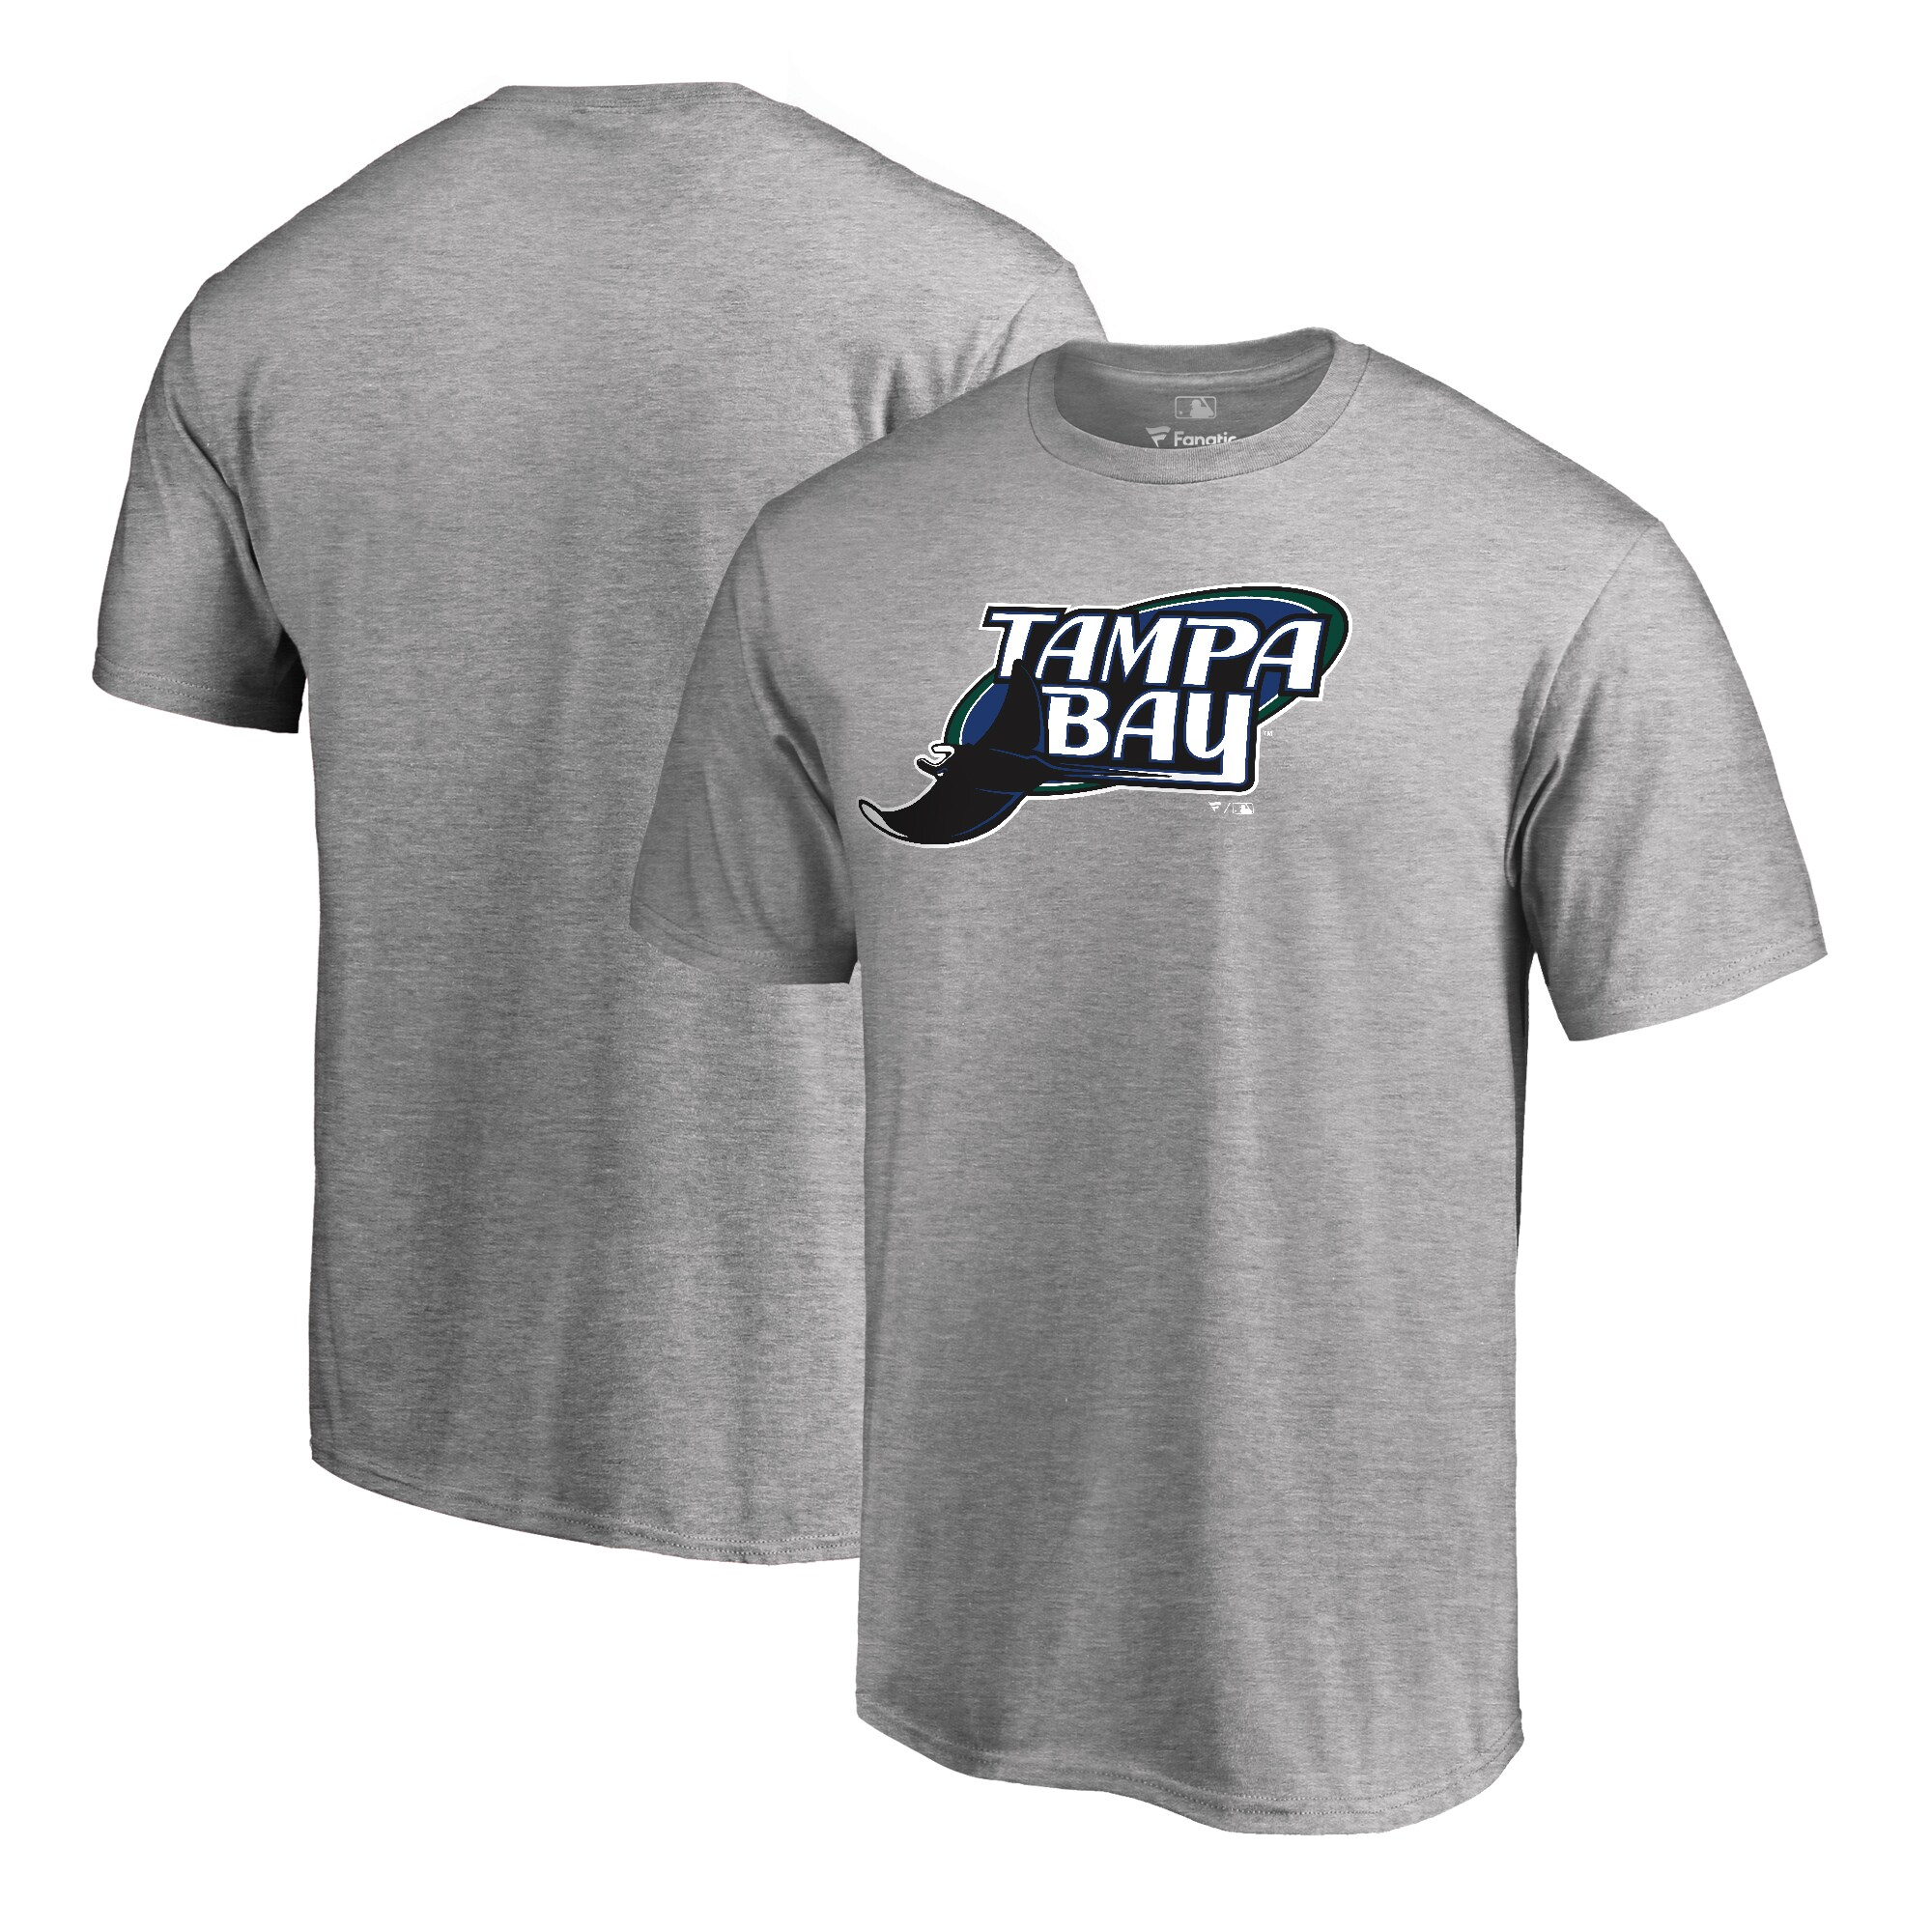 Tampa Bay Rays Fanatics Branded Cooperstown Collection Huntington T-Shirt - Ash